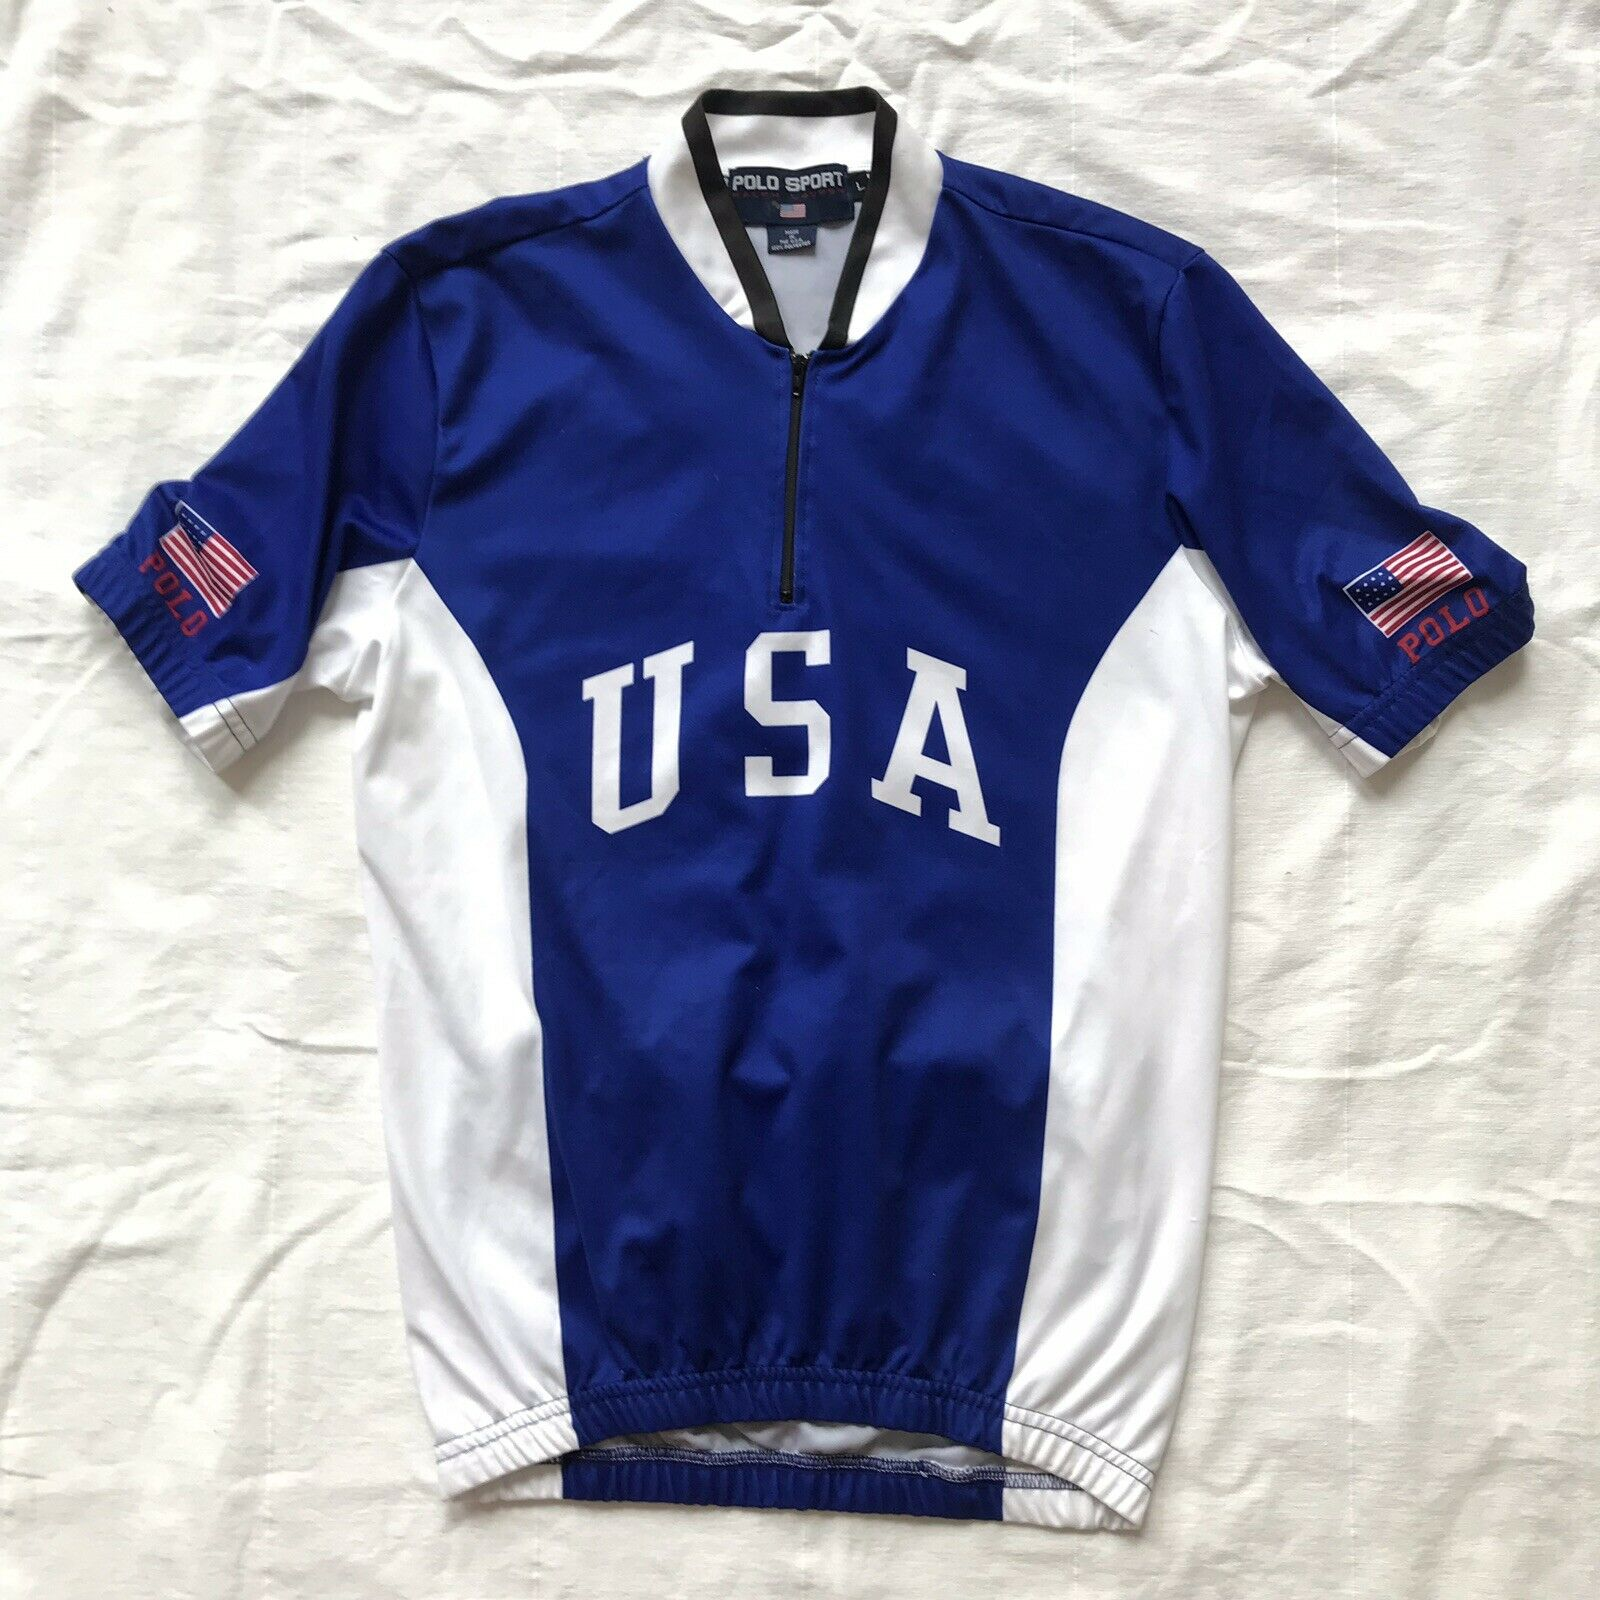 Polo sport USA bike jersey spellout made in  usa large  the best online store offer